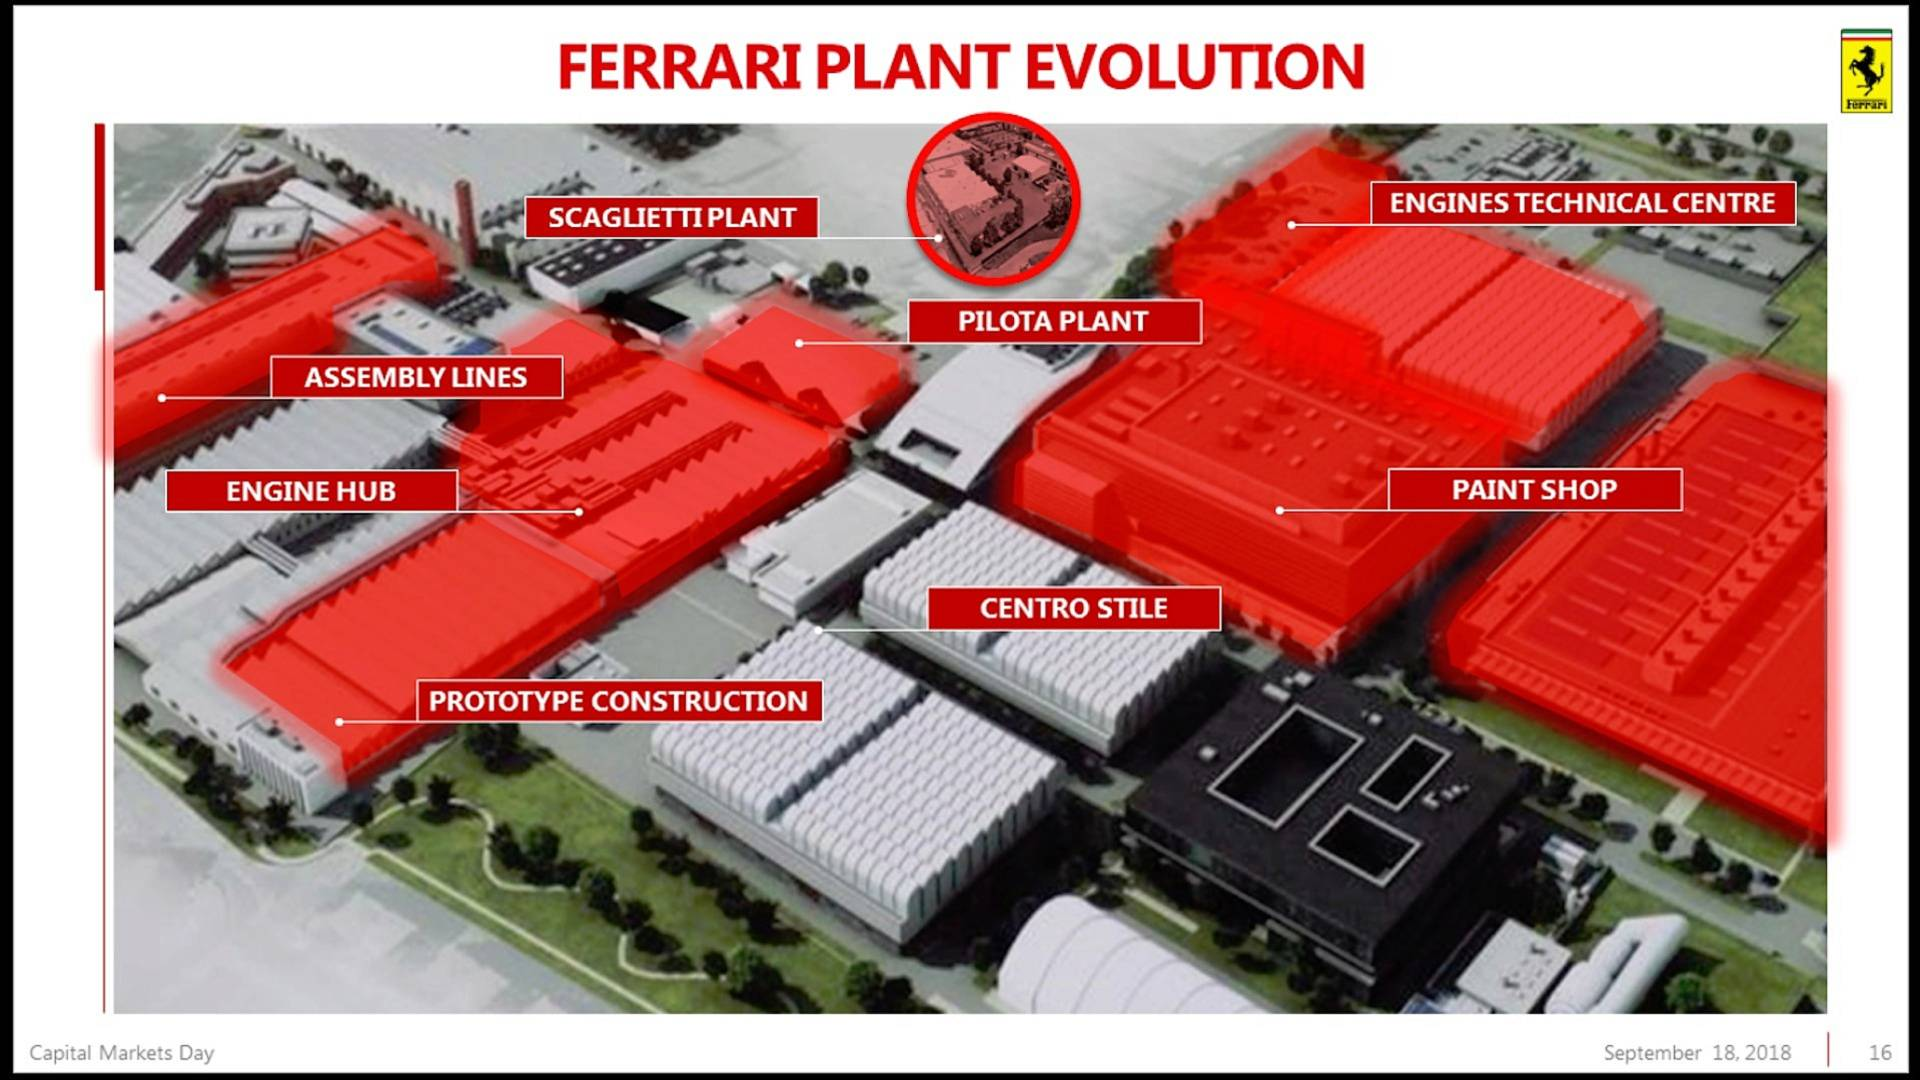 Piano Industriale Ferrari 2018-2022 (14)